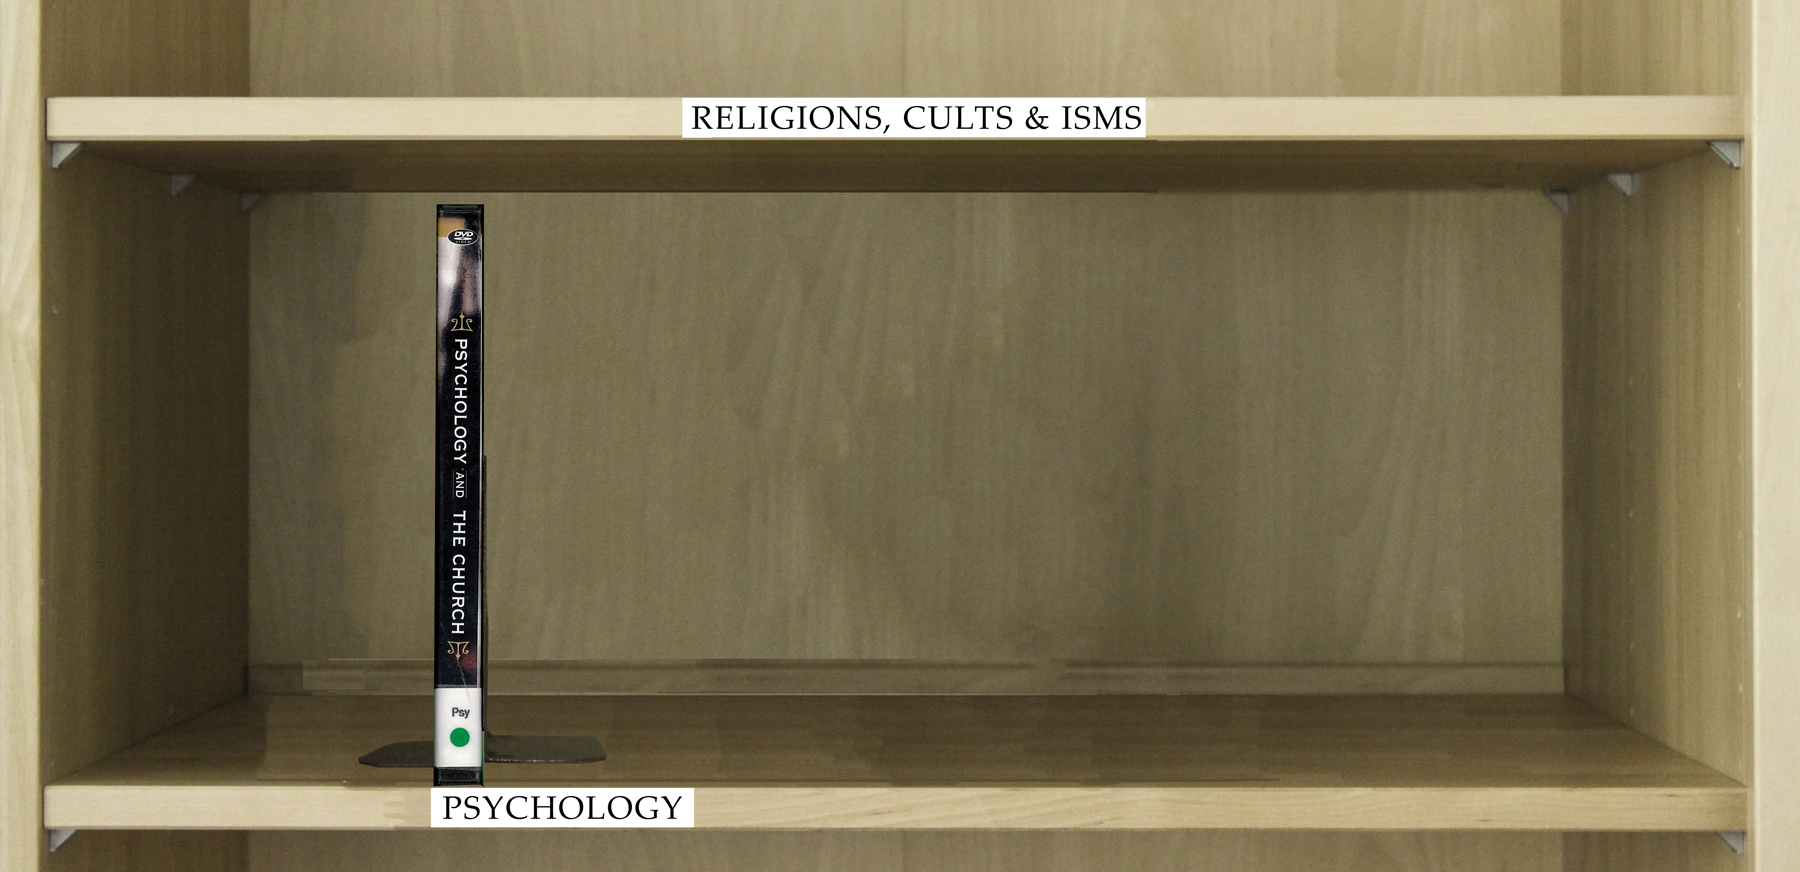 Index of DVD's Under the Category Psychology.